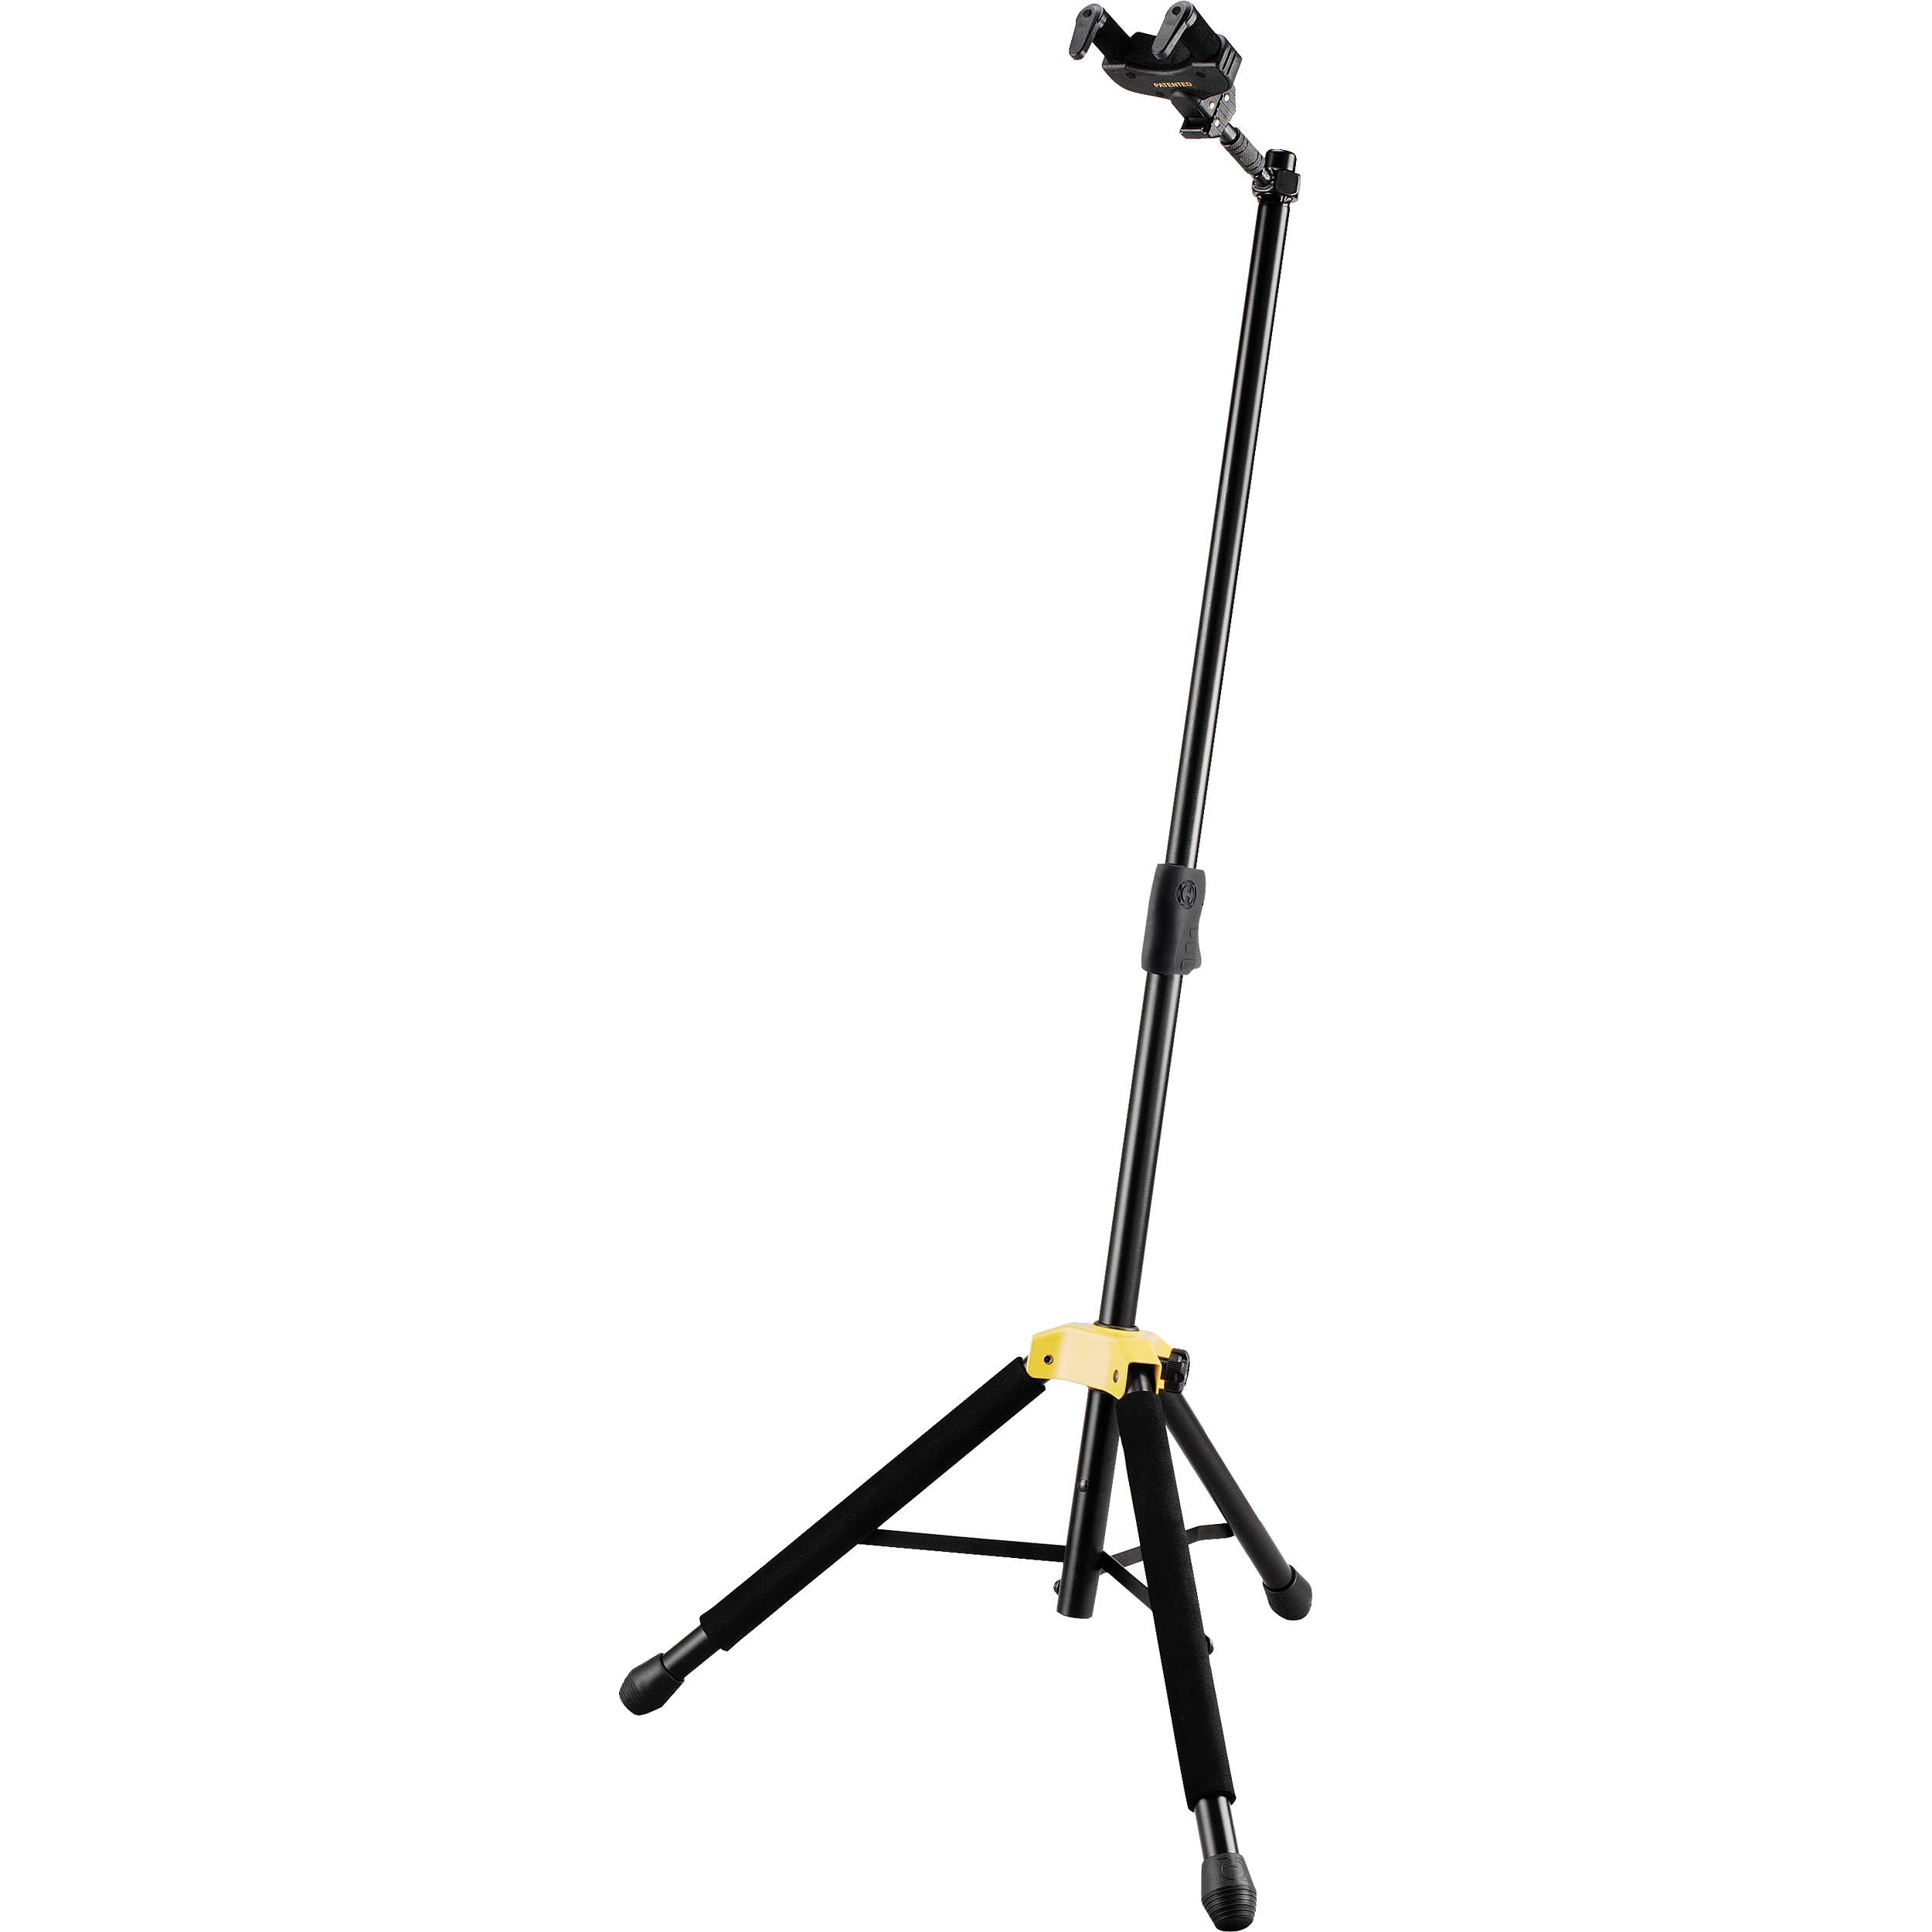 hercules stands auto grip system ags single guitar stand gs415b. Black Bedroom Furniture Sets. Home Design Ideas